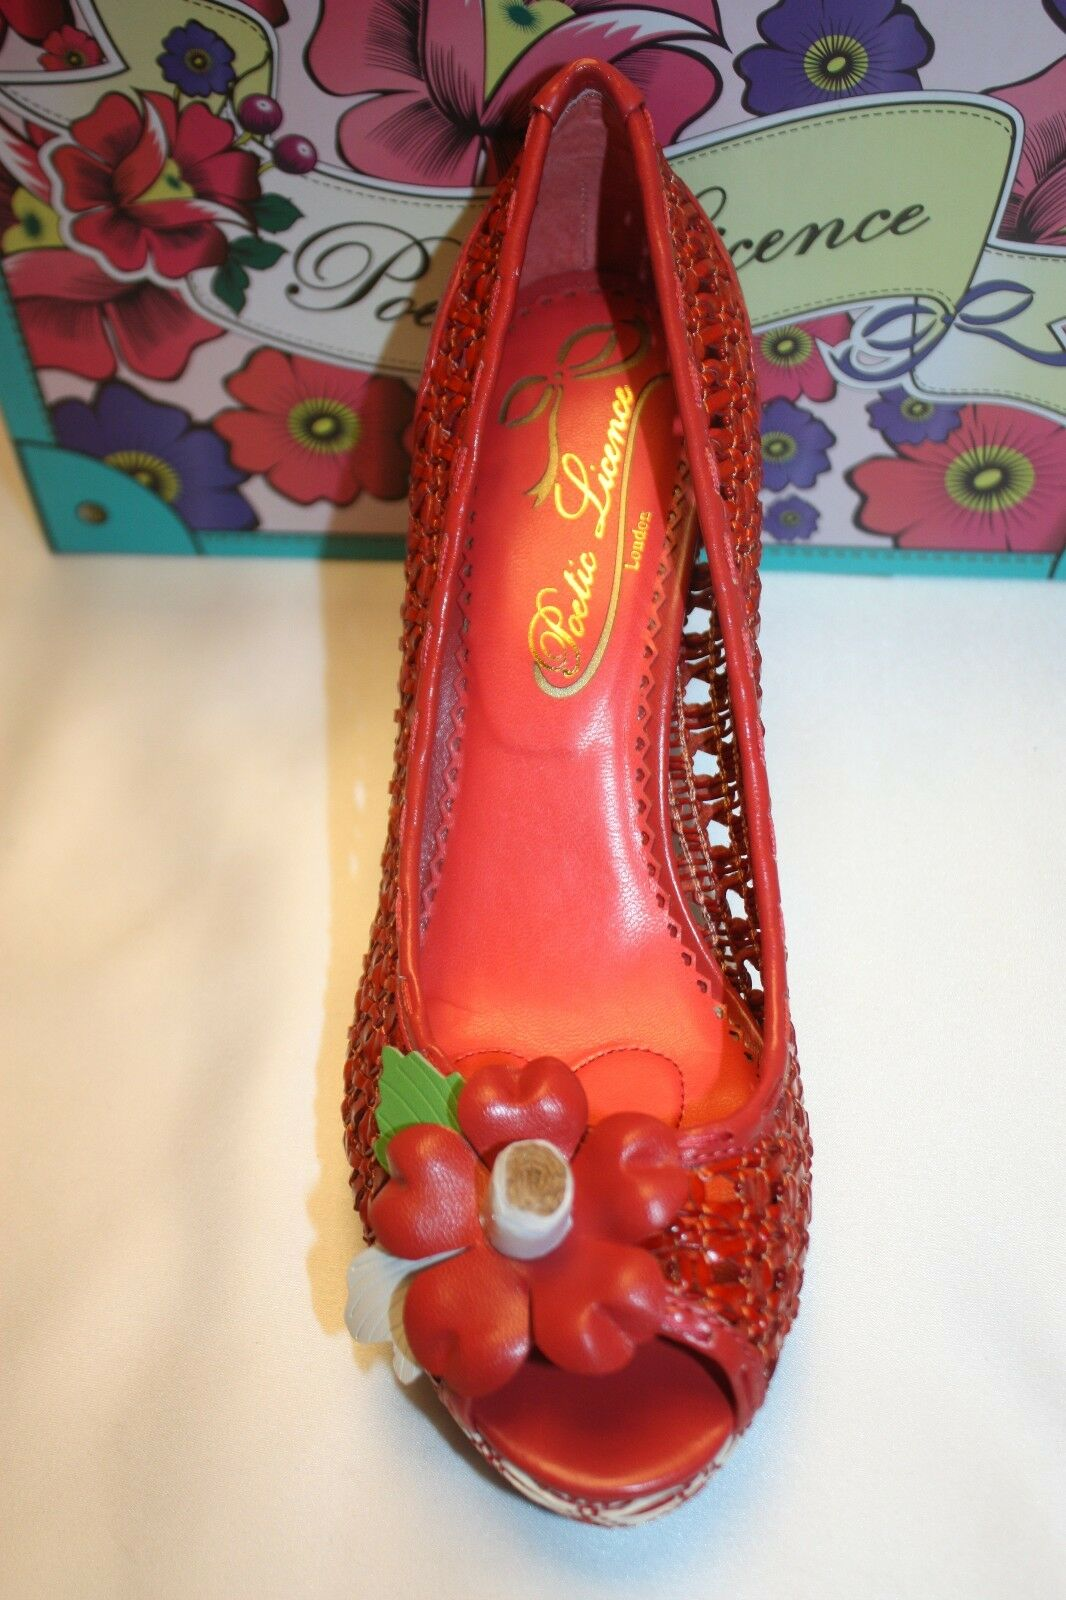 NEW NEW NEW  NIB  POETIC LICENSE Harvest Pumpkin Woven Leder PRICKLY PEAR Pumps 8 129 e56cb0